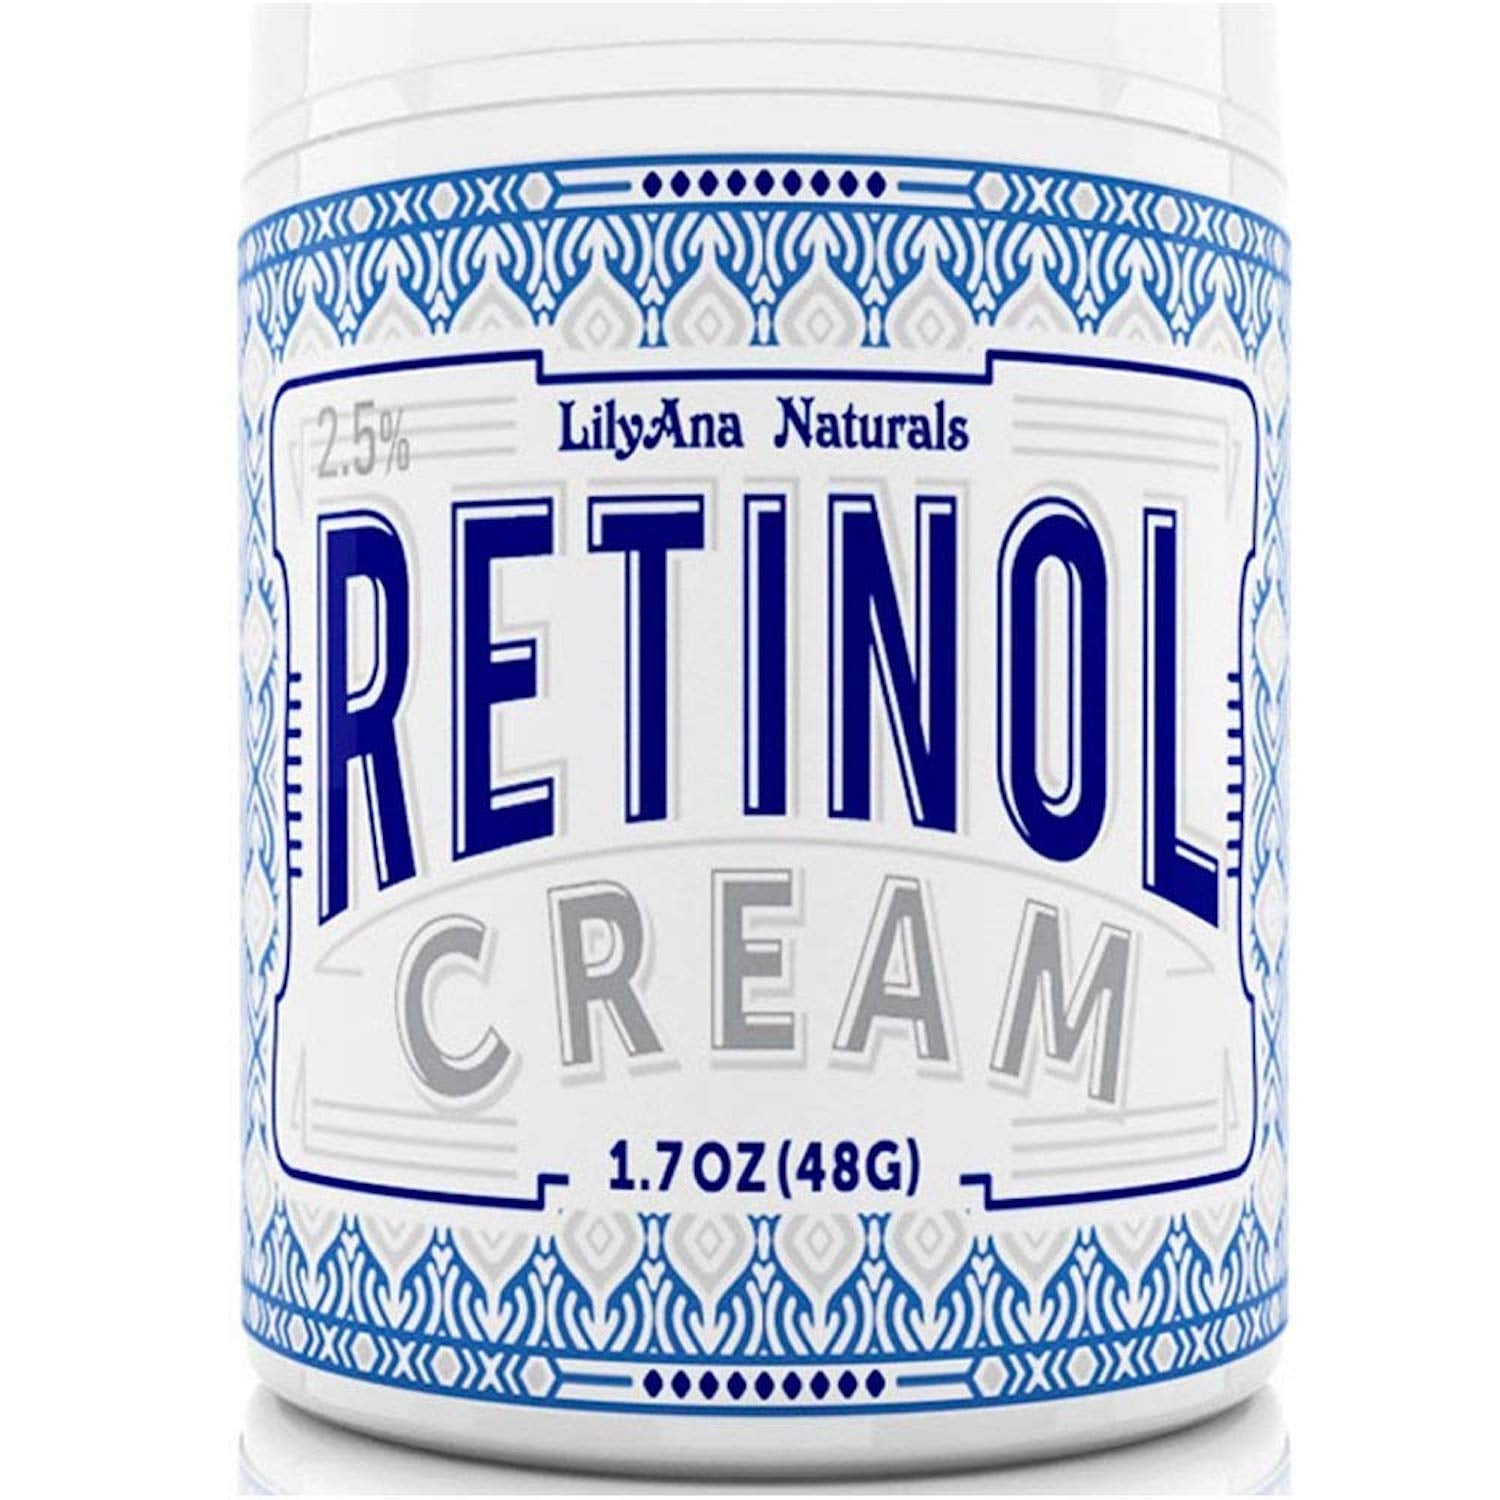 This $14 Retinol Cream Is Amazon's Top Product on the ENTIRE Site For Black Friday